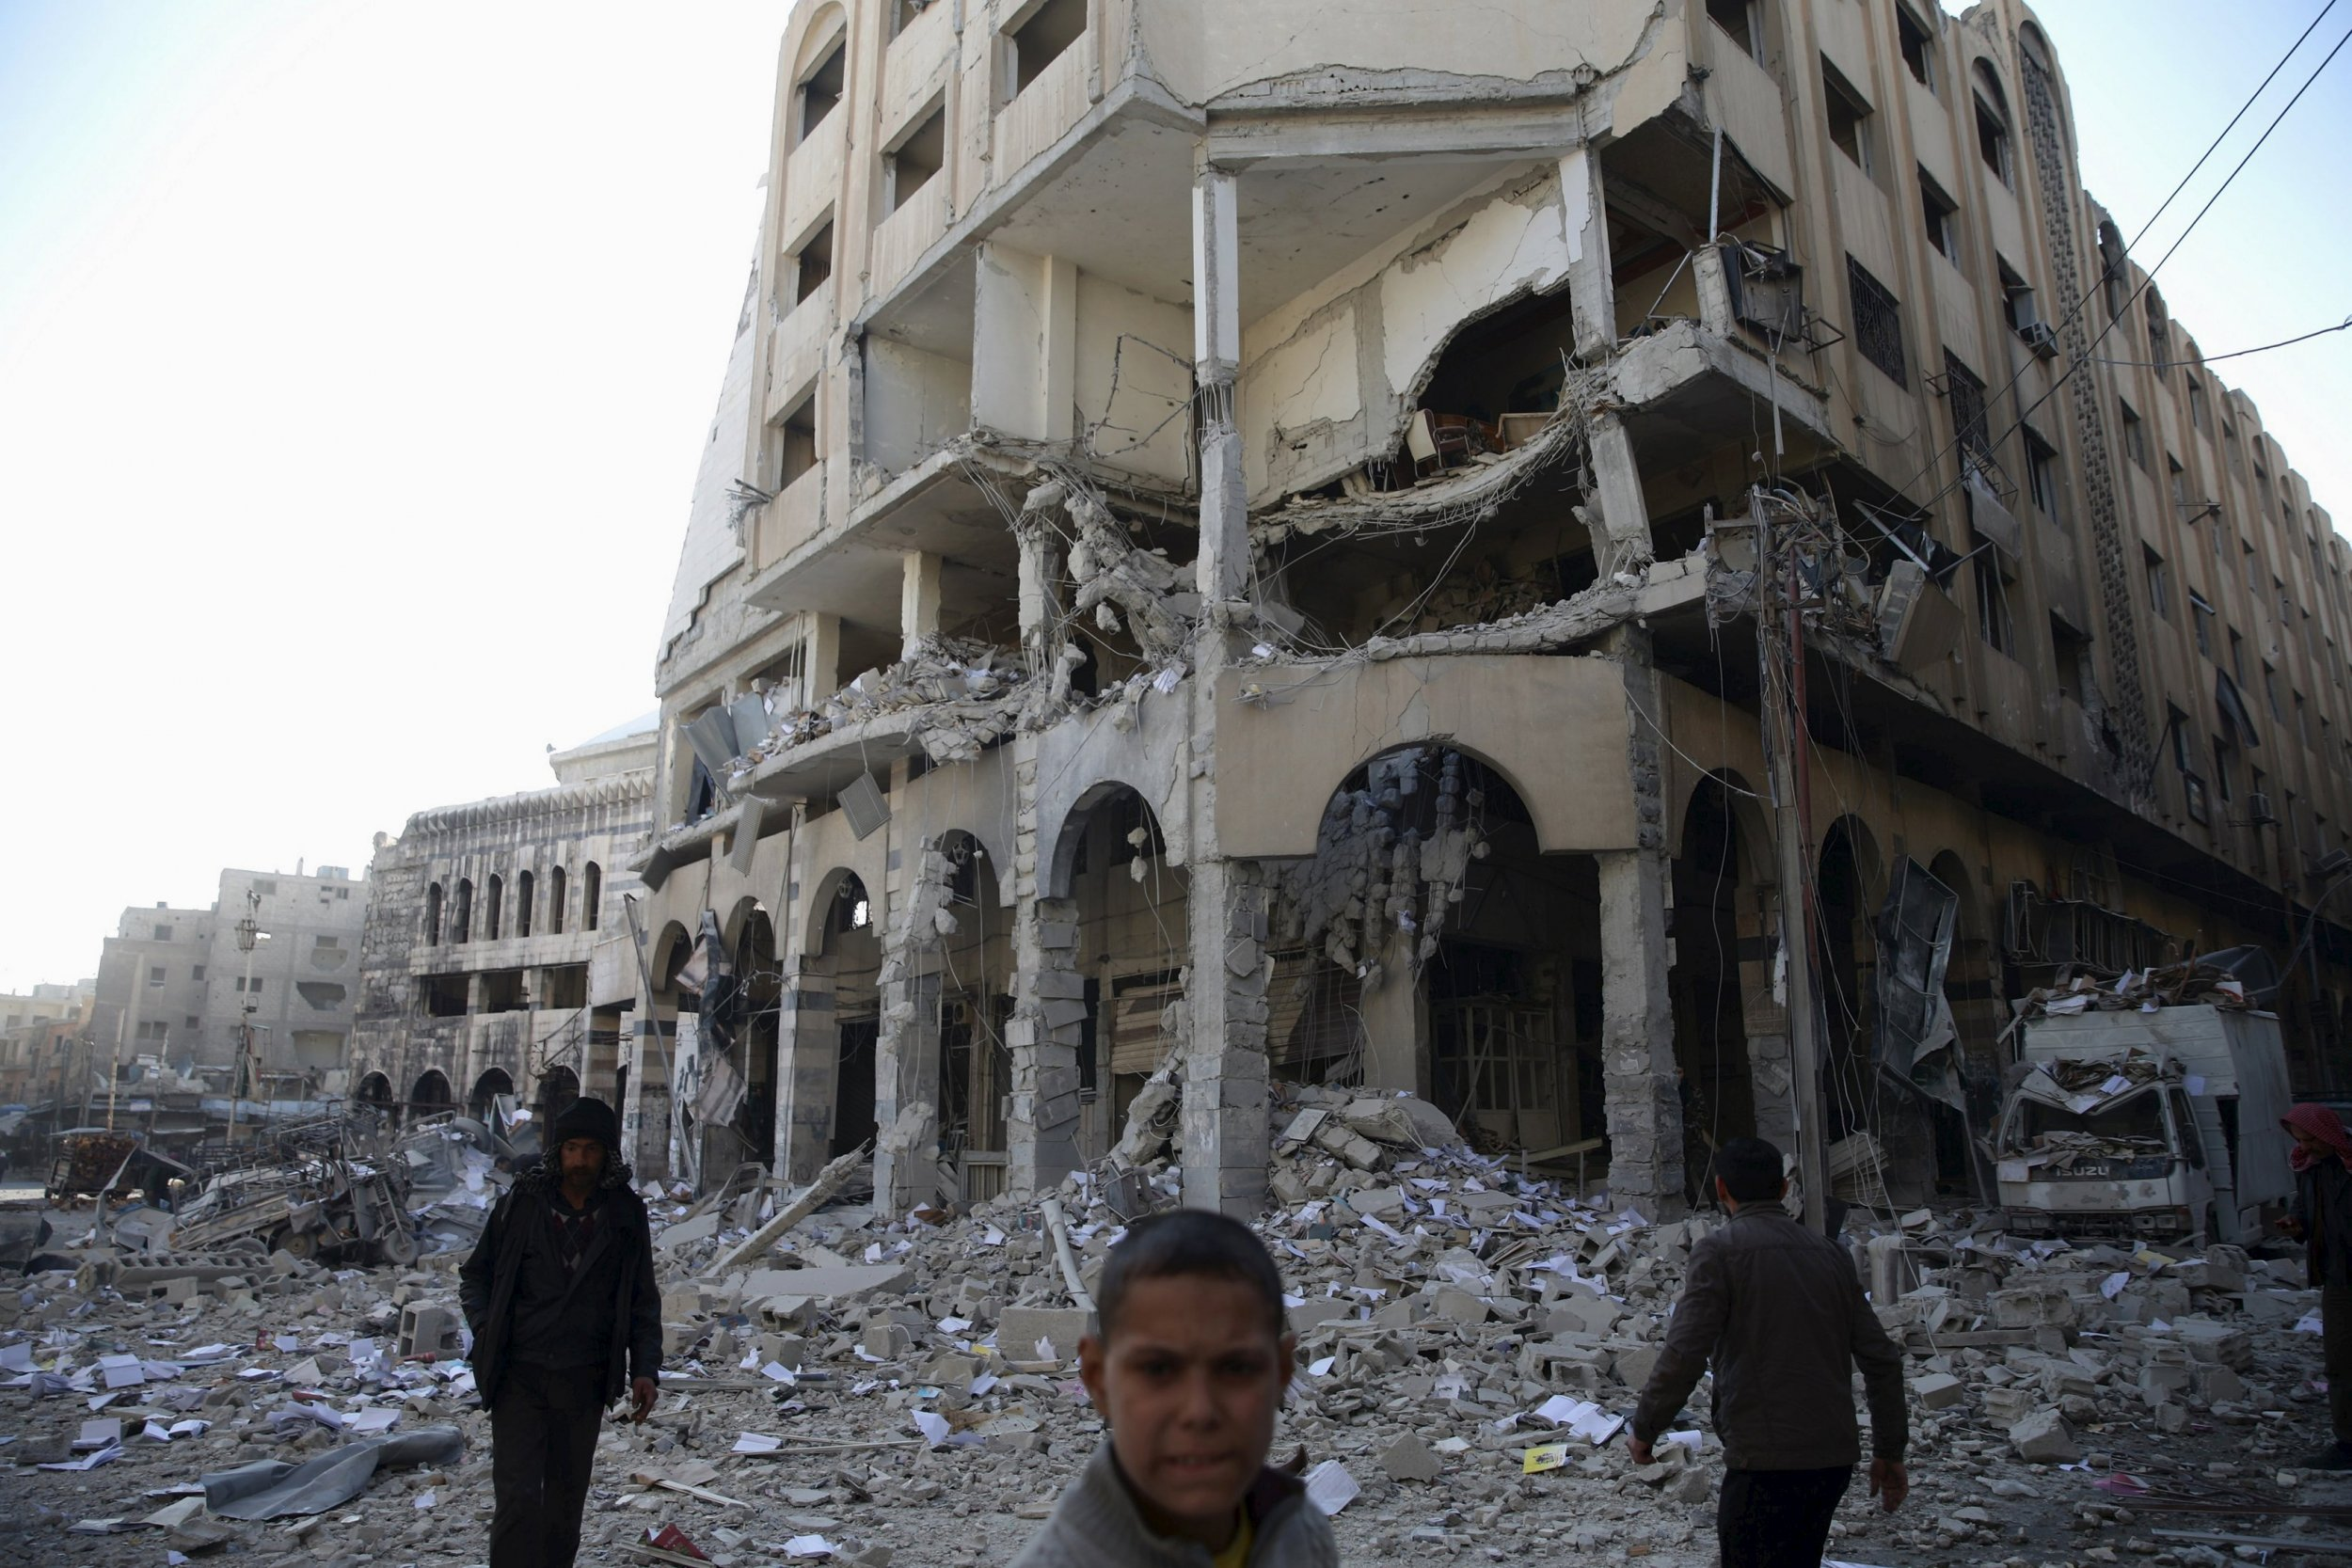 2015-12-30T191704Z_1169567042_GF10000279031_RTRMADP_3_MIDEAST-CRISIS-SYRIA